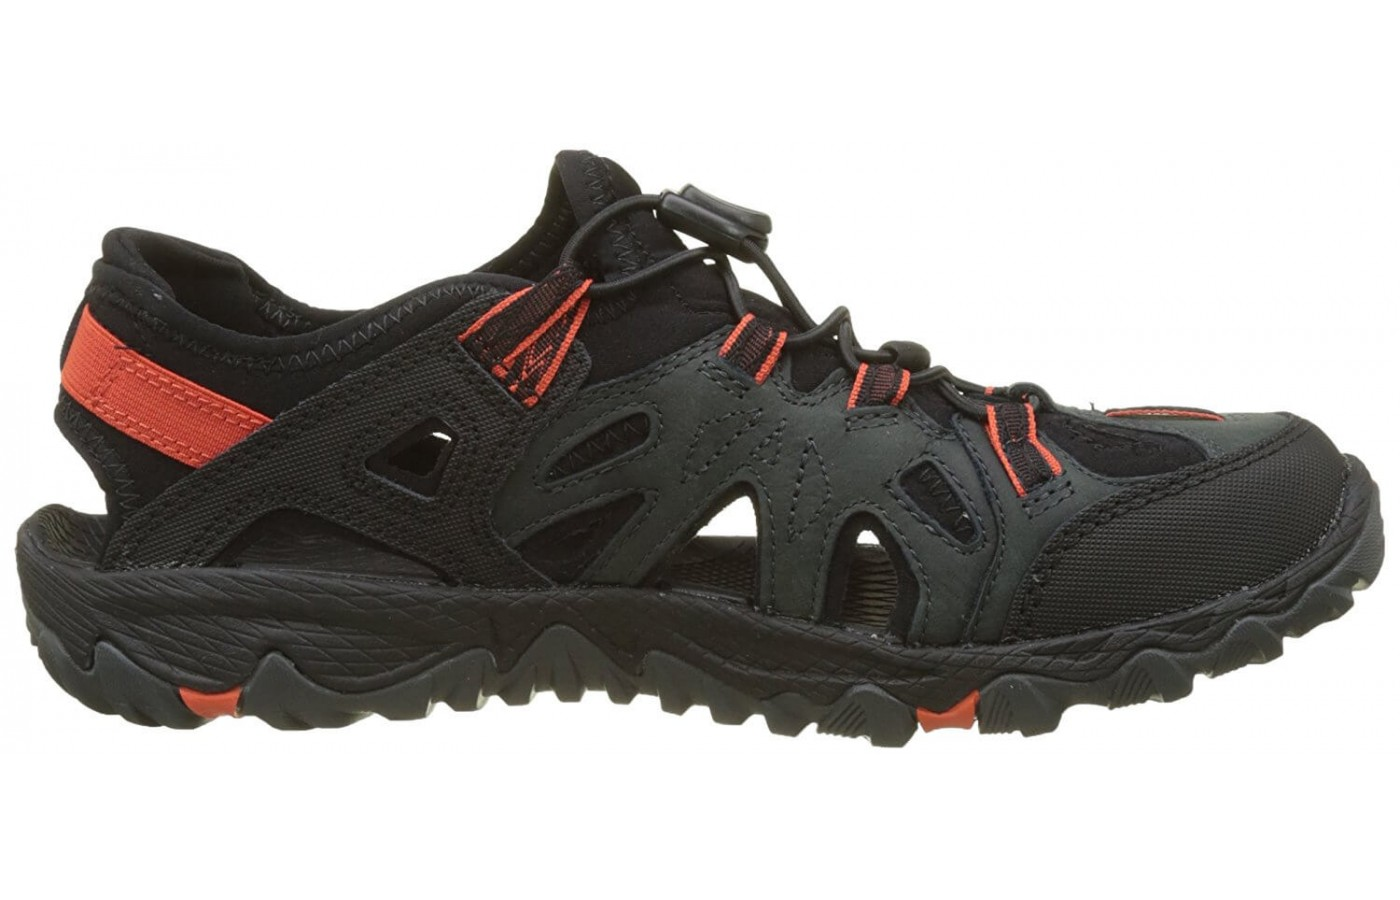 The Merrell All Out Blaze Sieve includes a UniFly midsole for comfort and protection out on the trails.